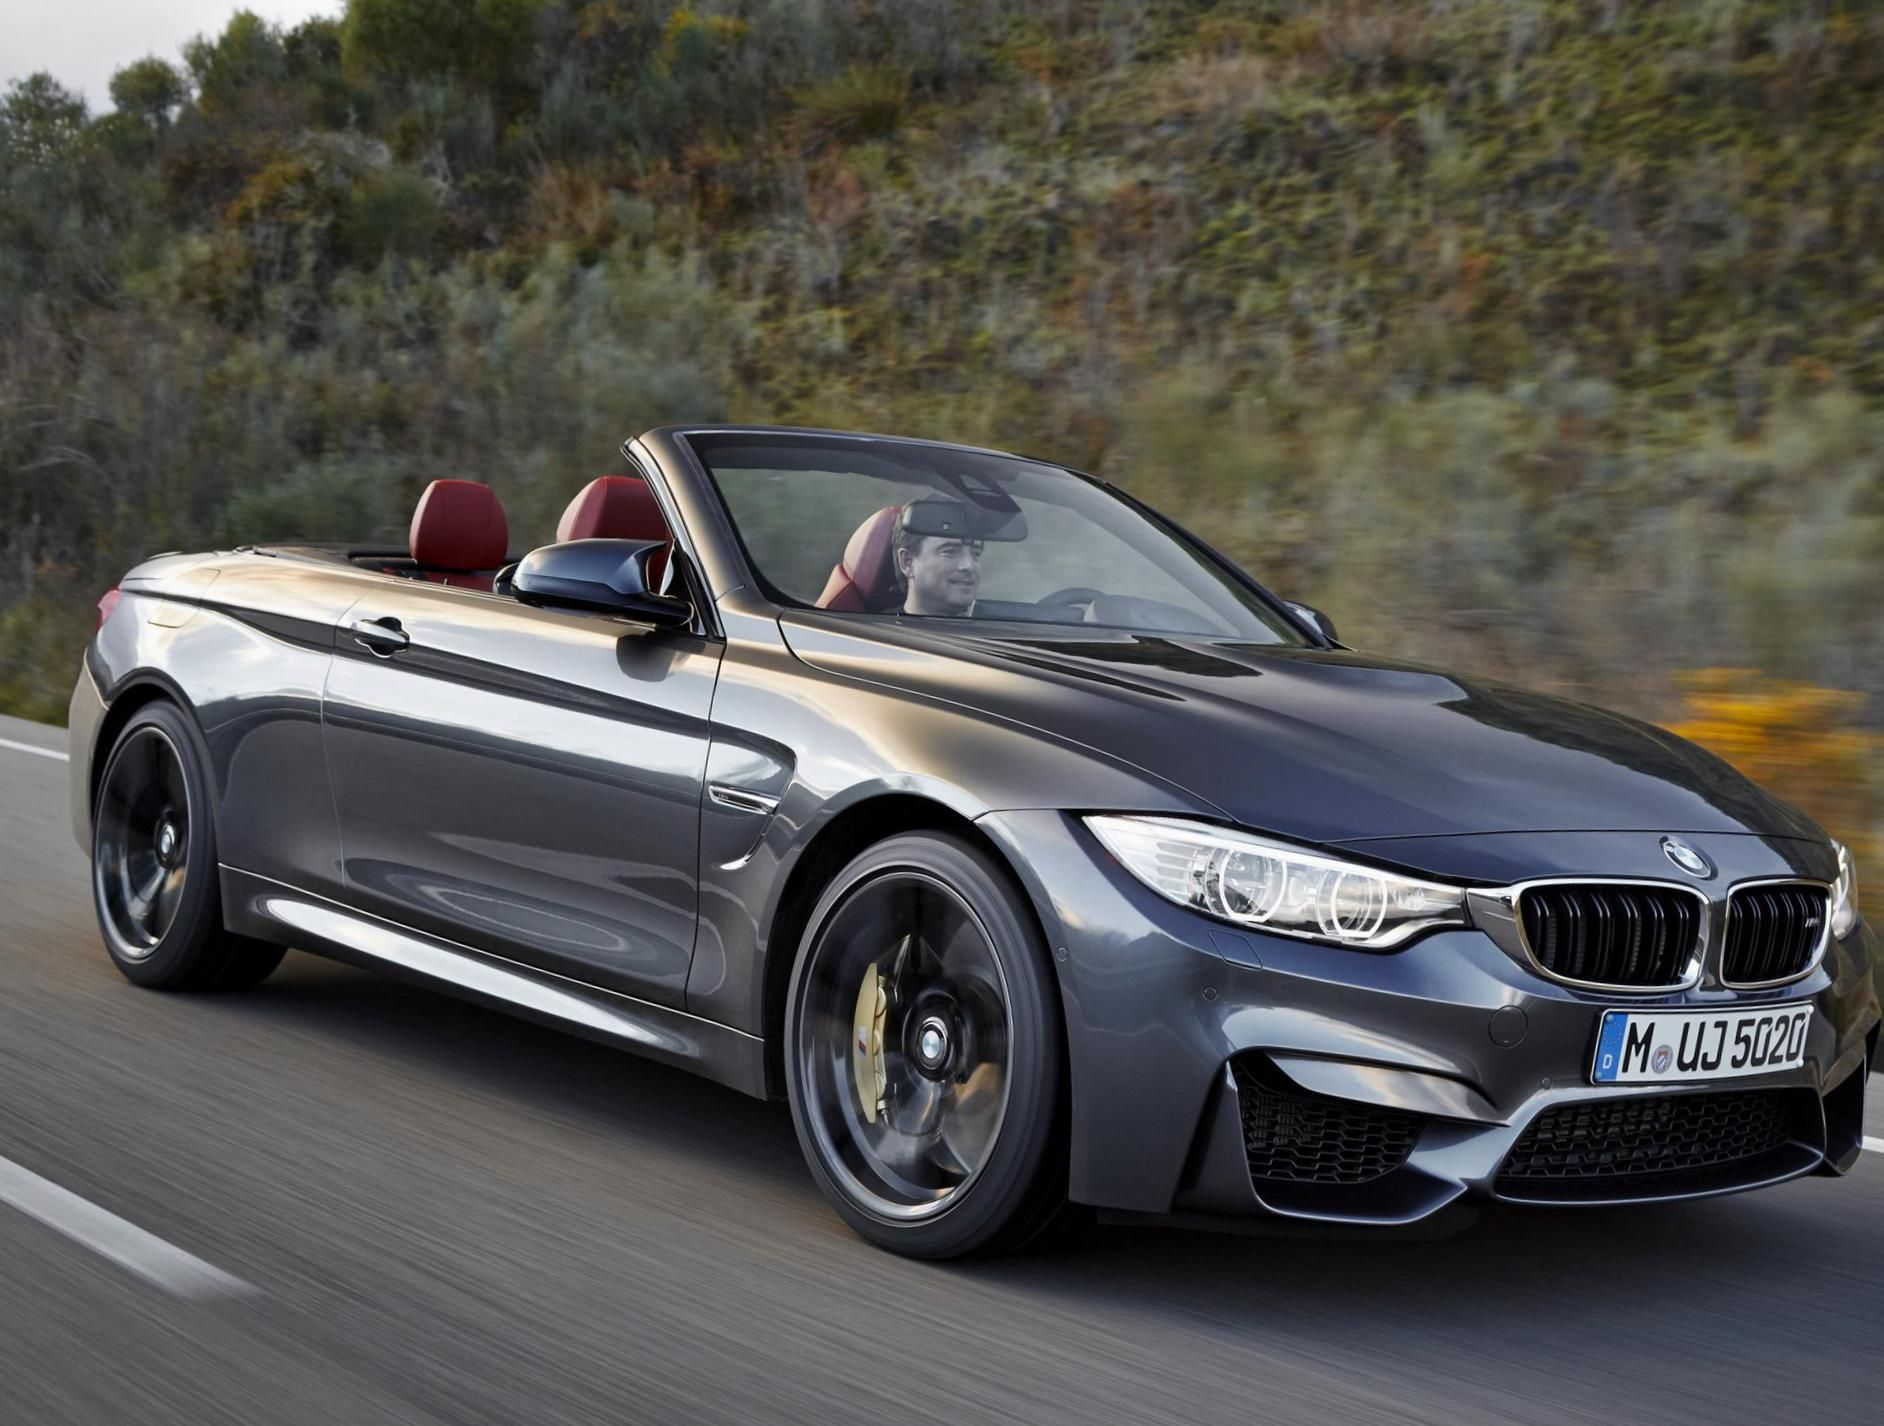 M3 Cabrio (E93) BMW reviews - http://autotras.com ...